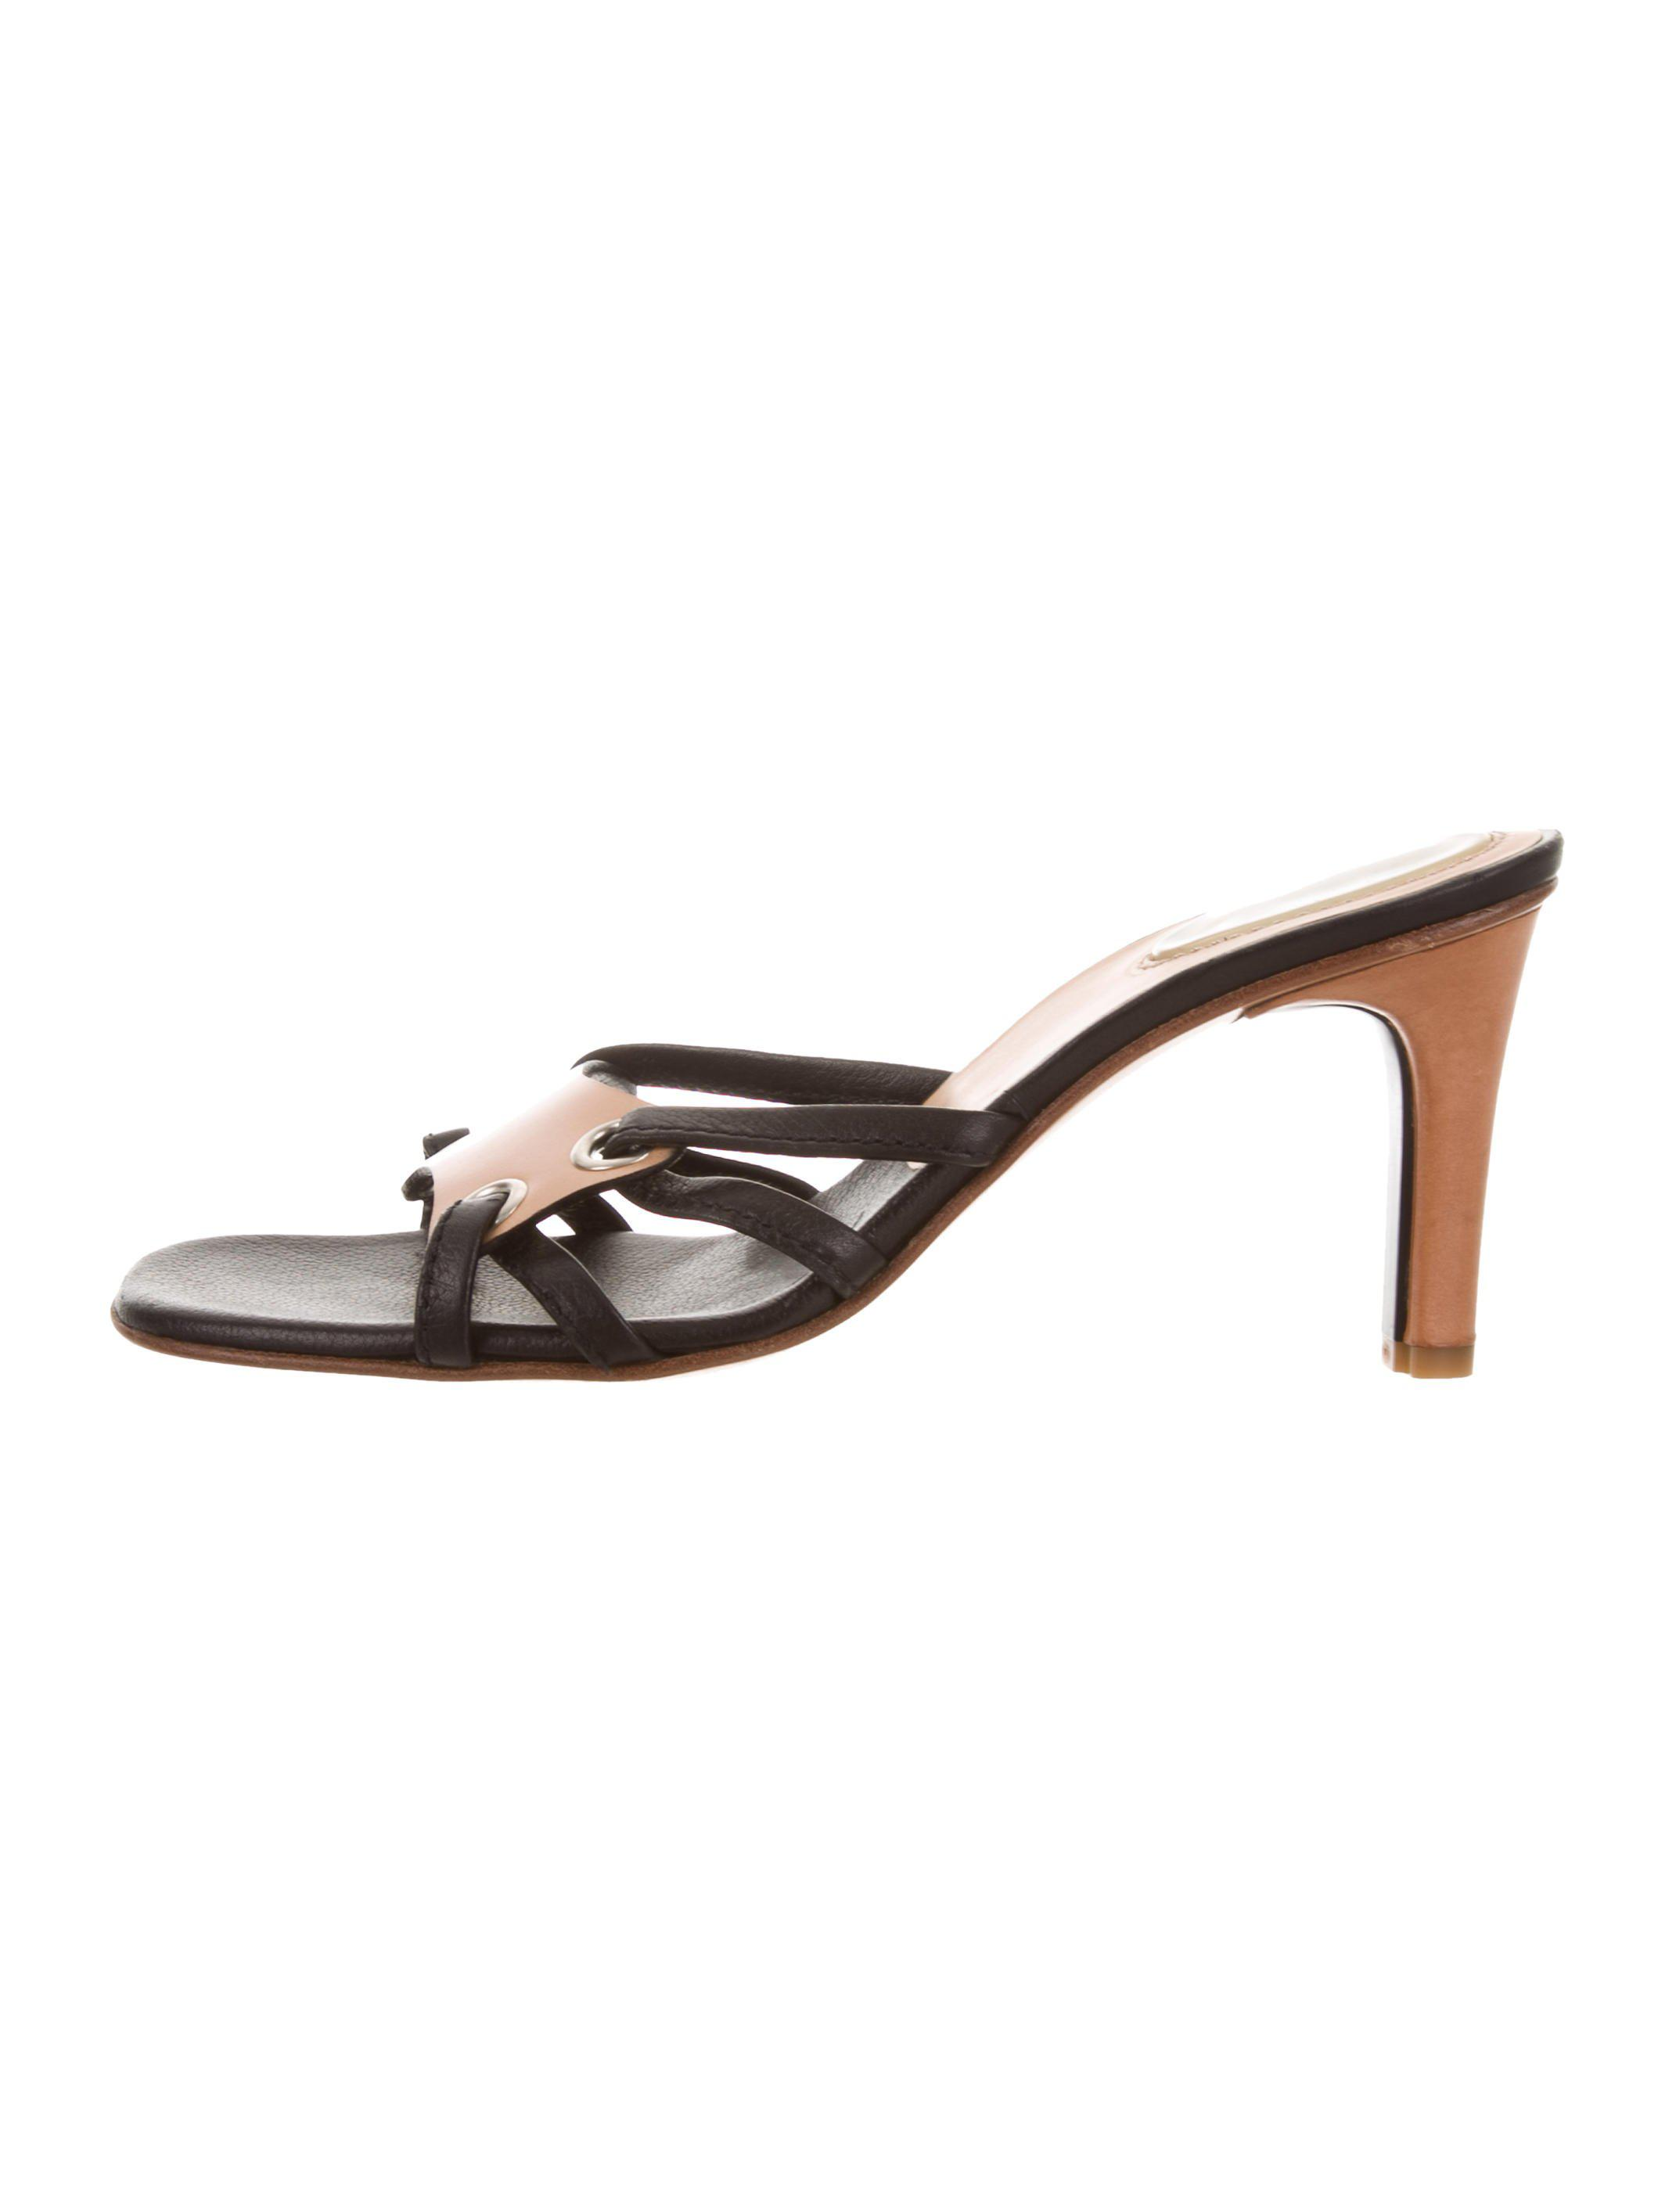 wiki for sale Casadei Leather Slide Sandals low shipping fee sale online cheap sale best seller clearance new arrival VUlWilyZR3